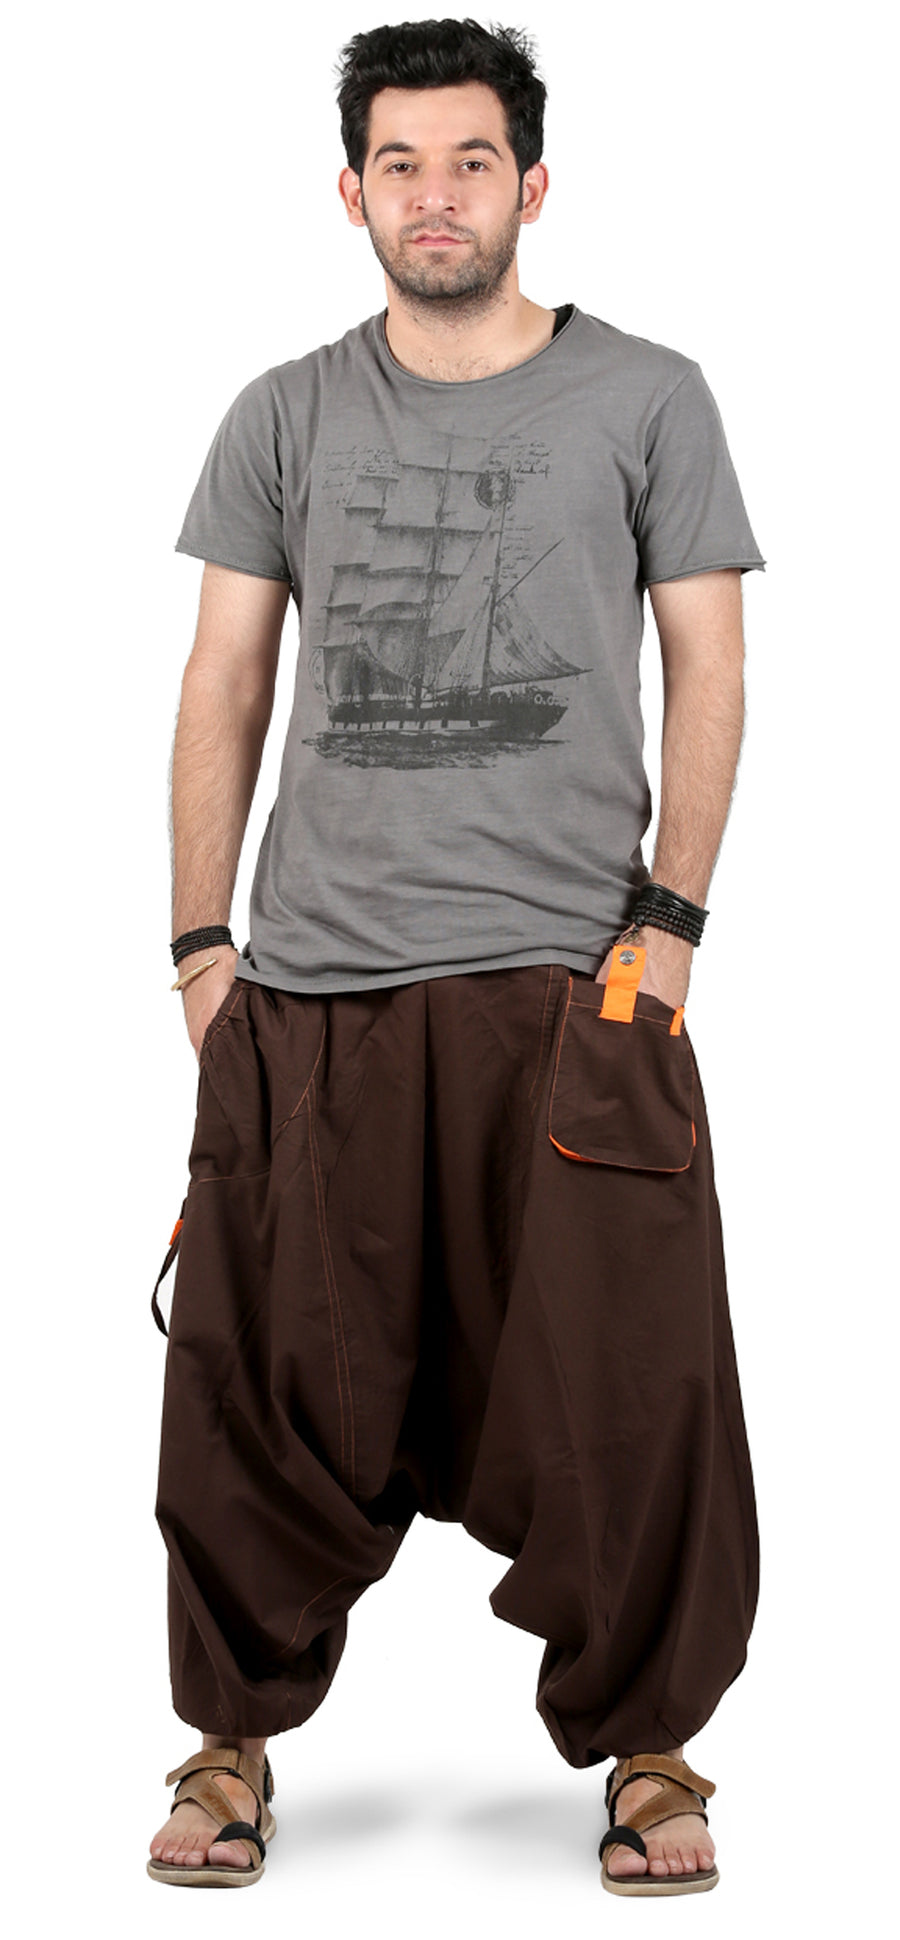 Harem Pants, Brown Harem Pants, Show me some Mens Harem Pants, Show me some Womens Harem Pants, What is a harem pant, Show me some baggy pants, I want to buy harem pants, comfy pants, travel pants, picnic pants, hiking pants, cool harem pants, Wide leg harem Pants, Cheap Harem Pants, Hippie Pants, Cotton Harem Pants, Show me best harem pants, Highly rated Harem Pants, Best Casual Pants